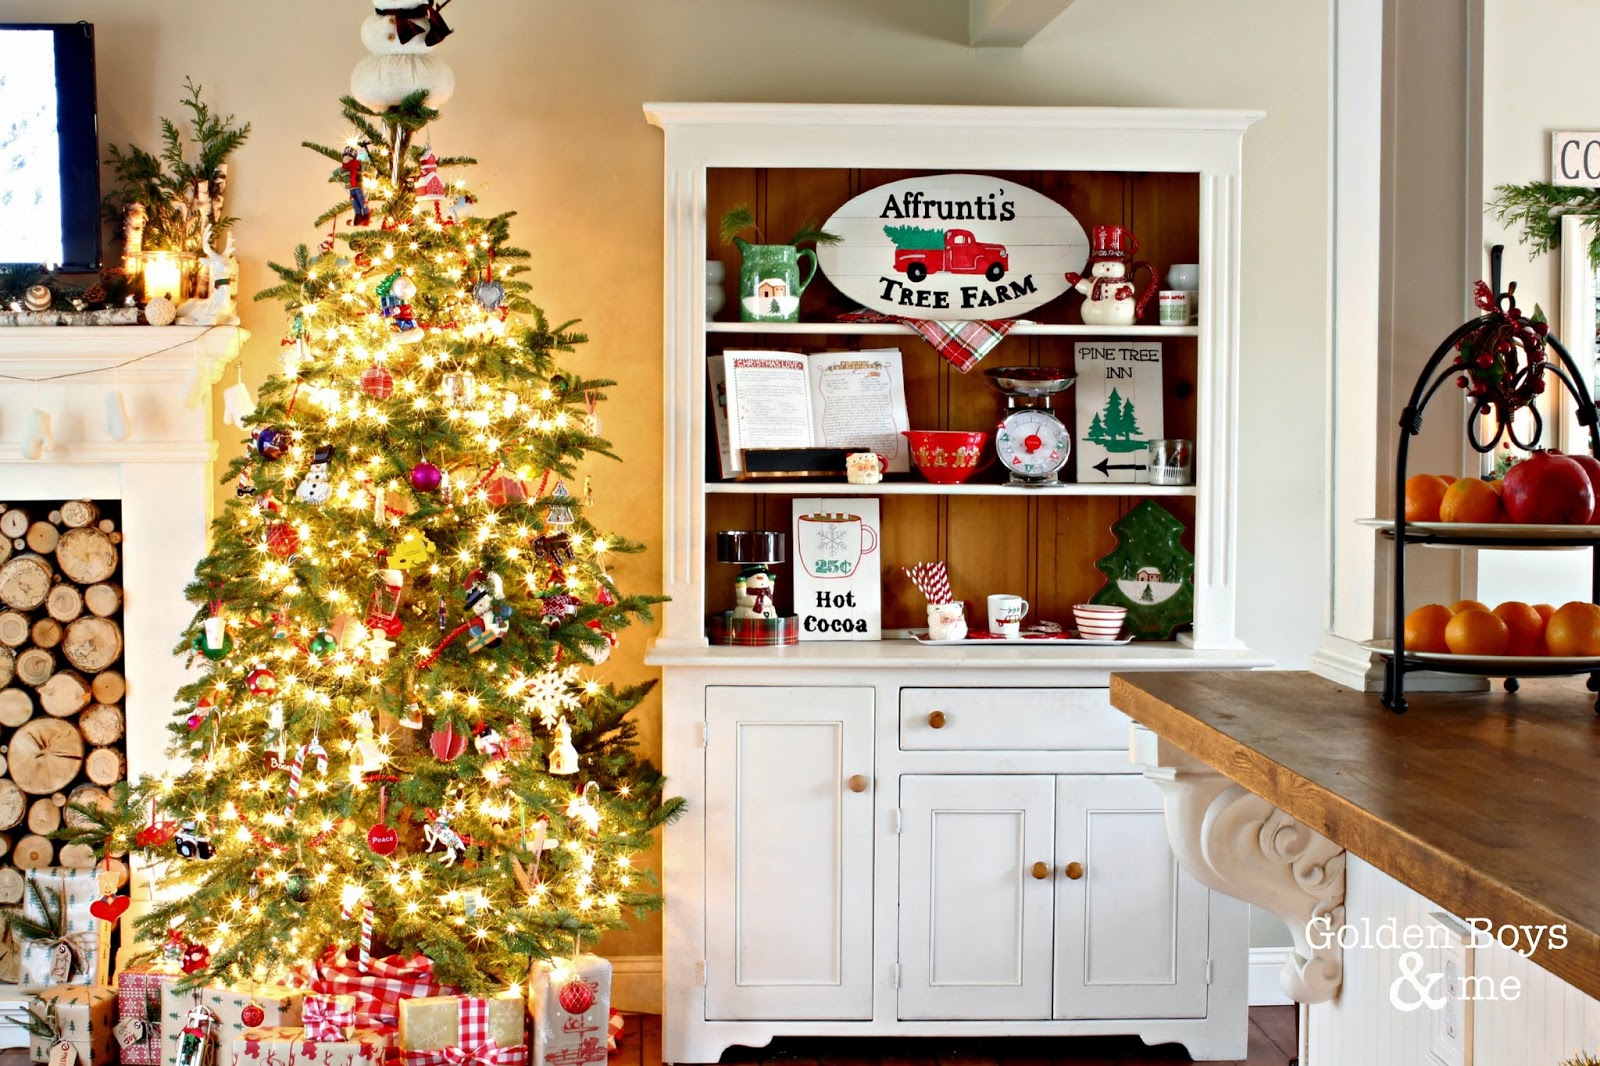 Christmas themed hutch with DIY painted signs-www.goldenboysandme.com